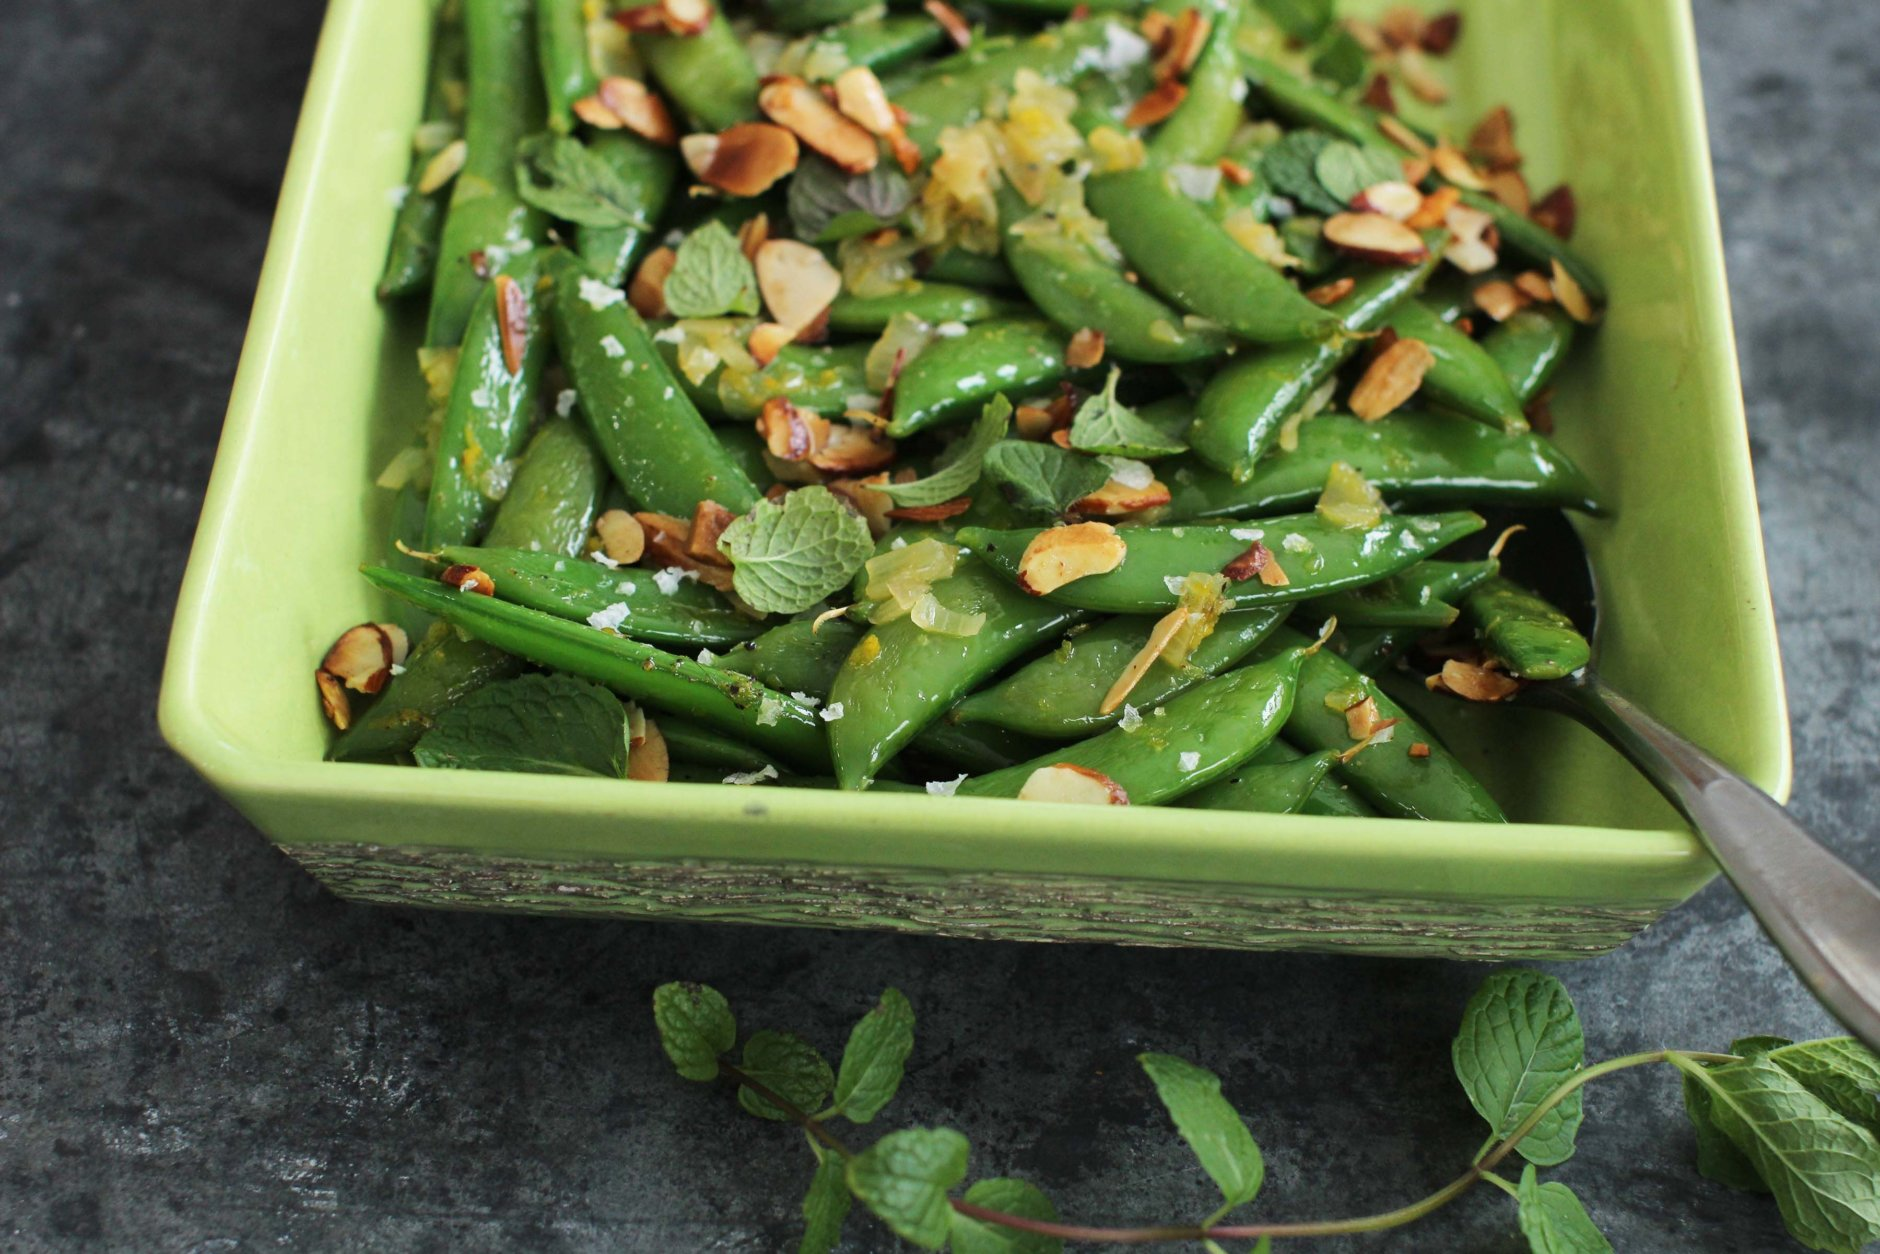 This Feb. 8, 2016 photo shows minty sugar snap peas with tangerine and toasted almonds in Concord, N.H. After a long winter of heavy foods, this simple, but delicious dish adds bright flavors and colors to springtime meals. (AP Photo/Matthew Mead)